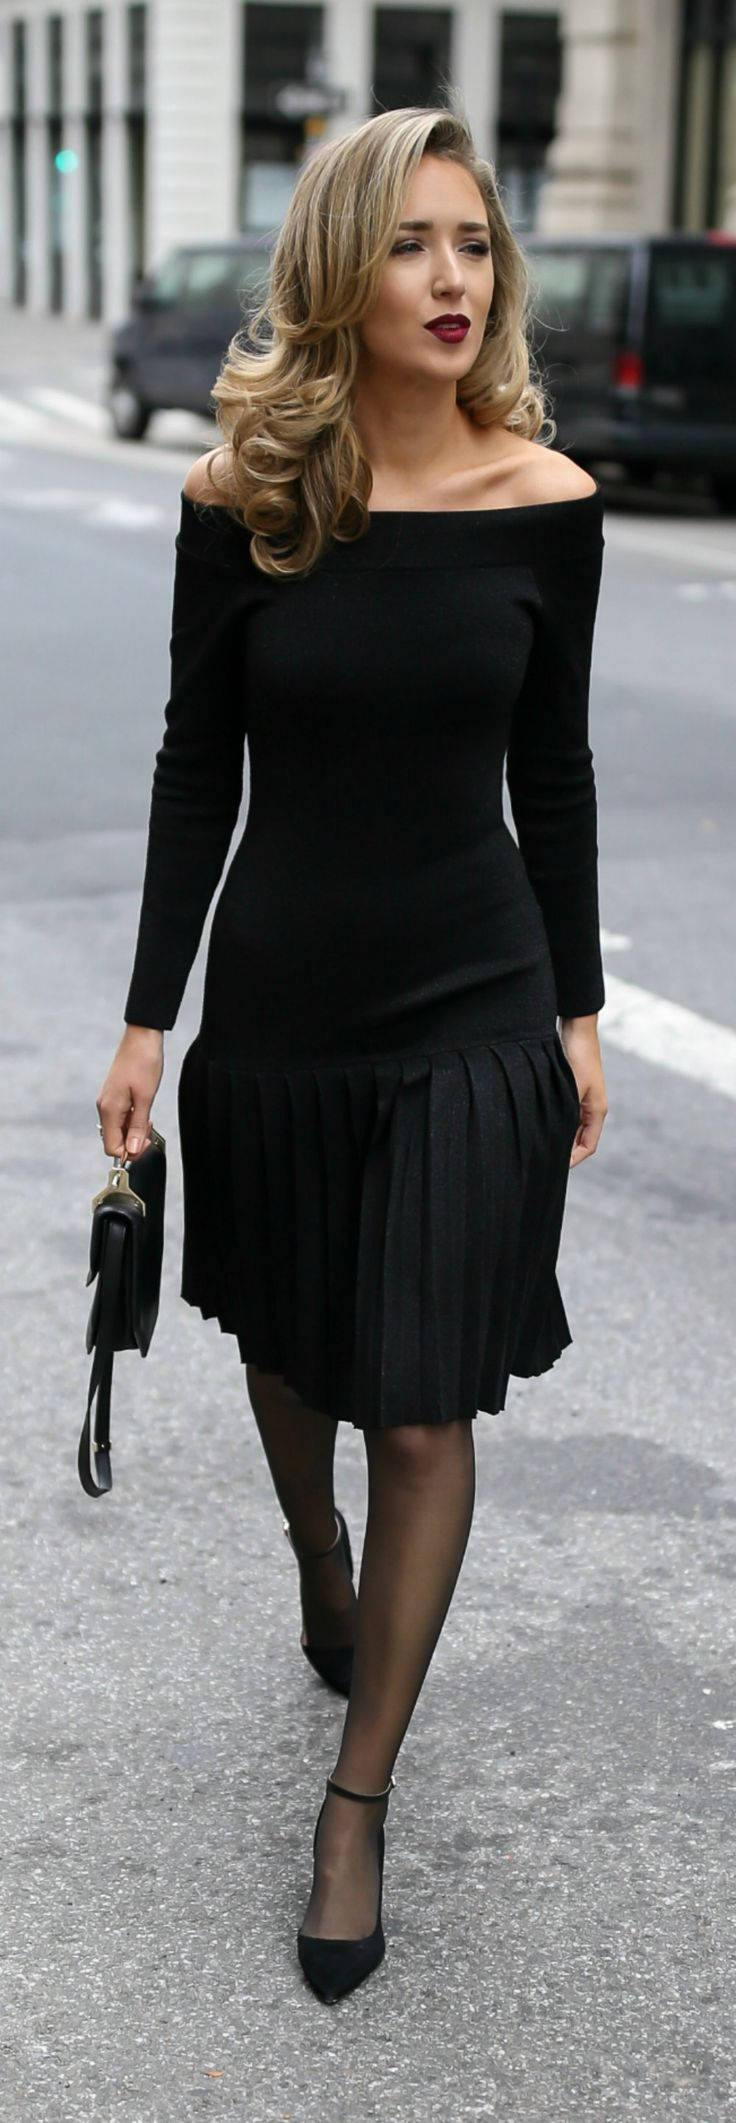 30 DRESSES IN 30 DAYS: Engagement Party //  Black off the shoulder pleated knit sparkle dress, black suede ankle-strap pumps, black structured mini bag, sheer black tights and a dark red lip {Rebecca Vallance, M2Malletier, Sam Edelman, what to wear to an